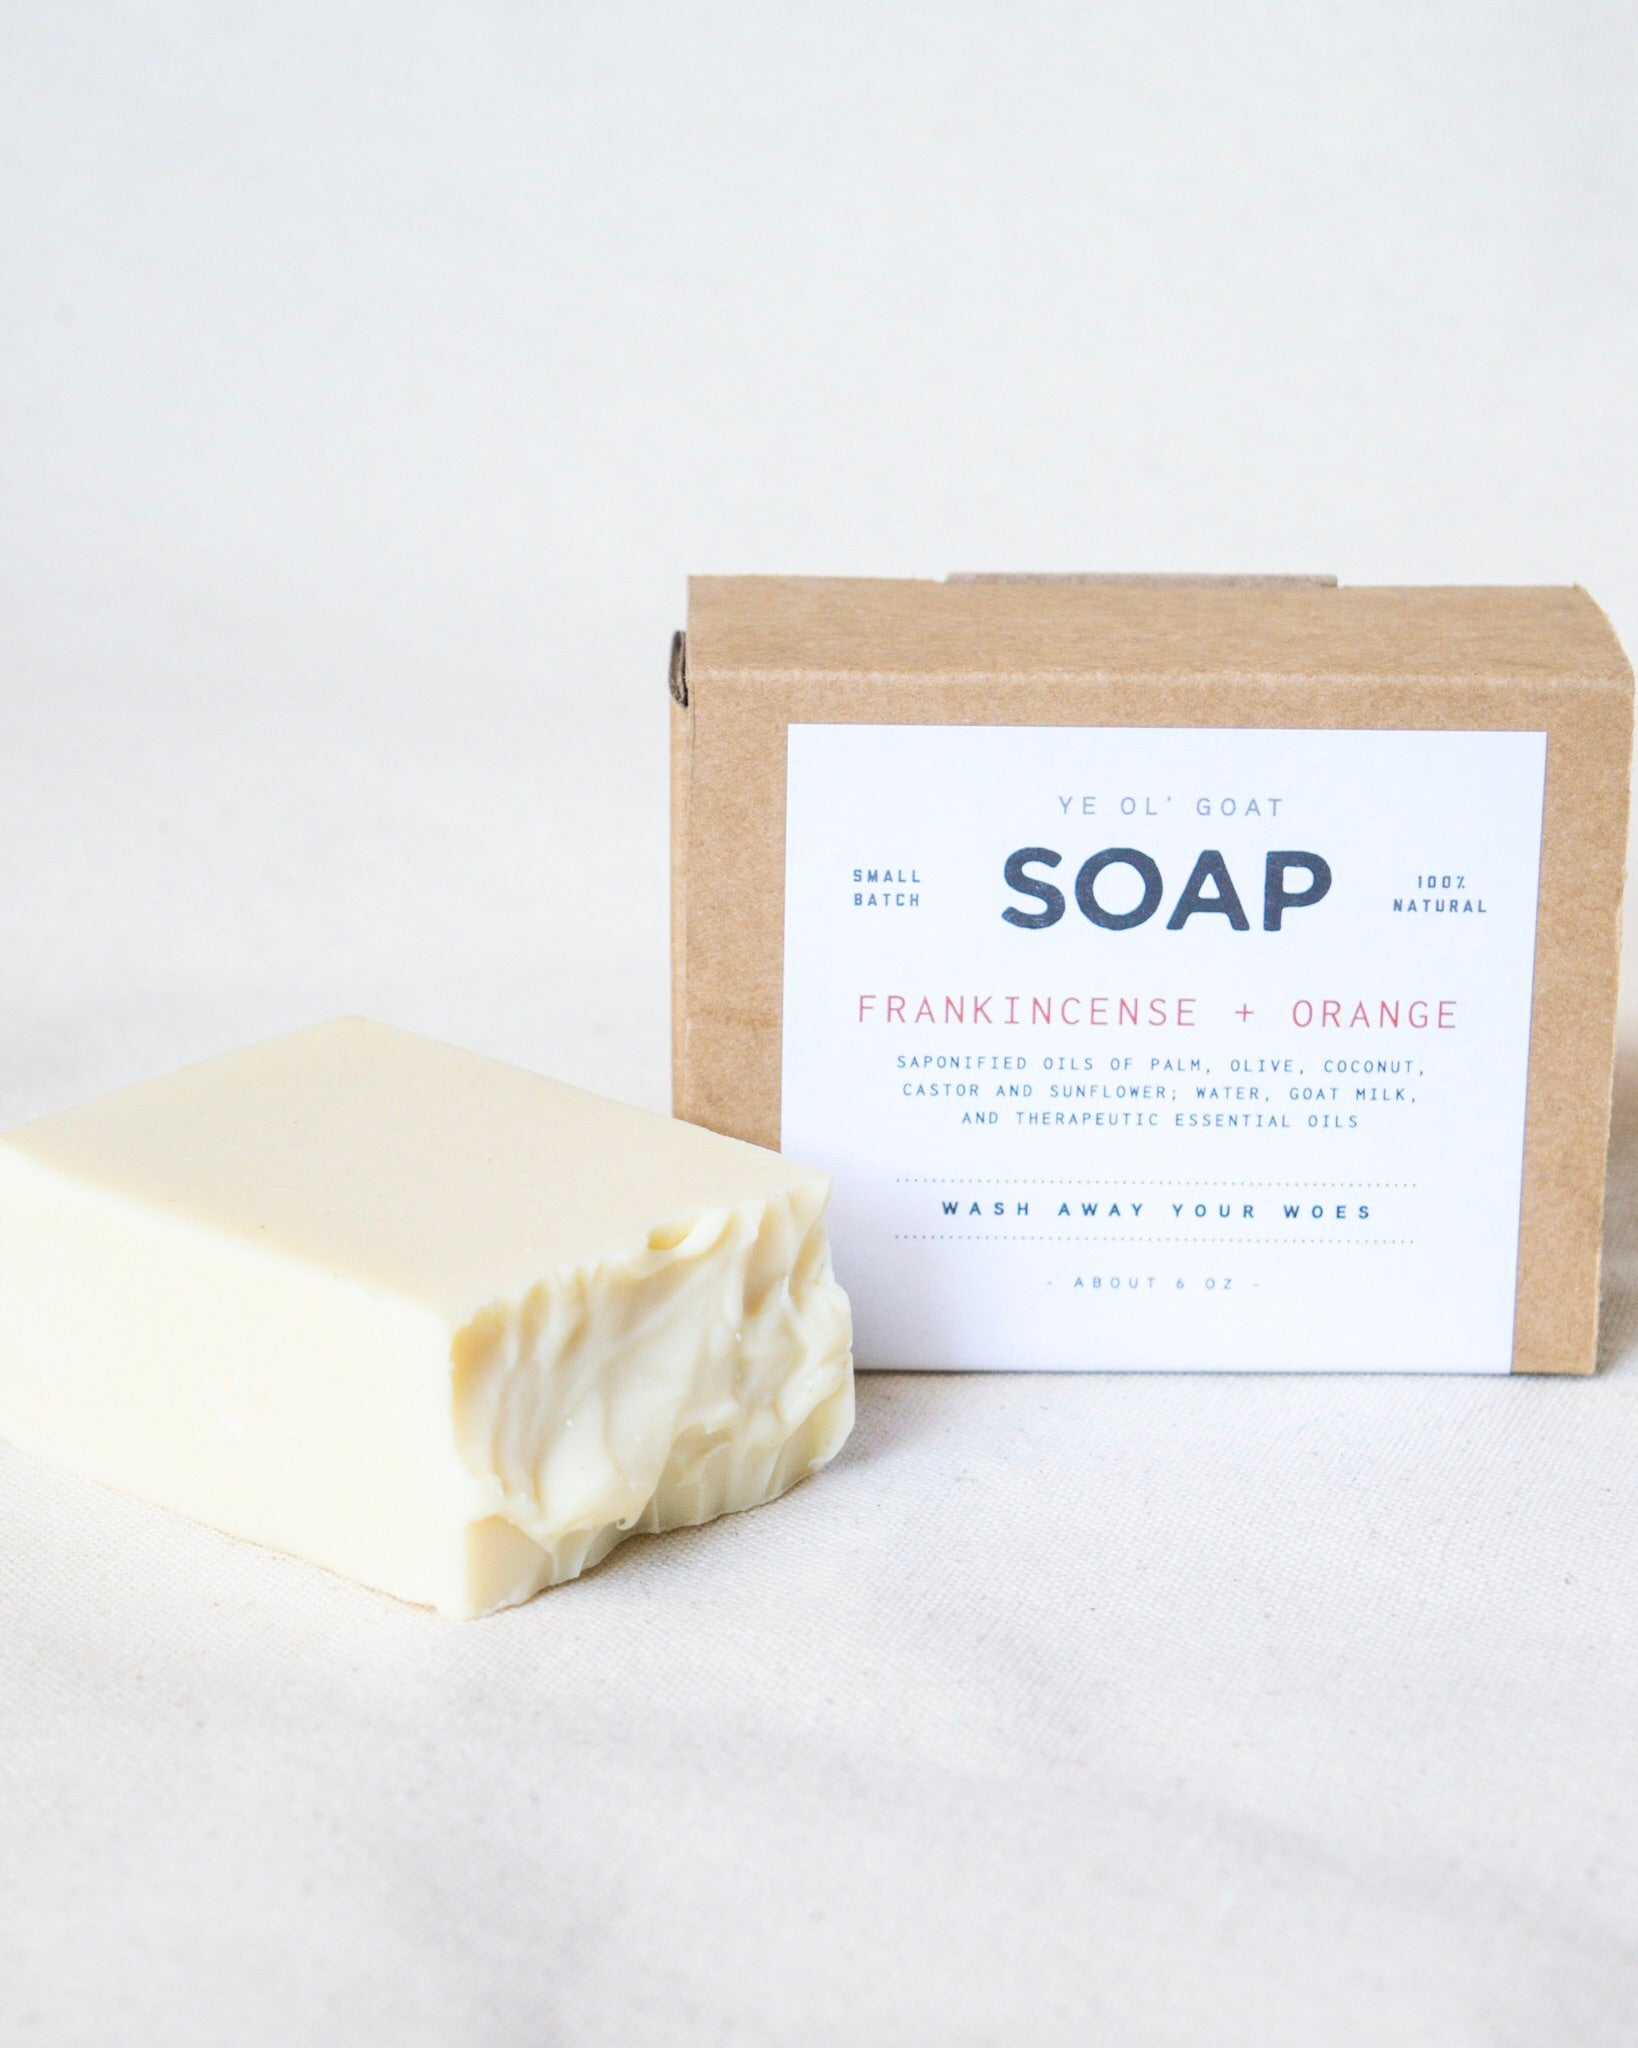 Ye Ol' Goat Soap - Frankincense + Orange